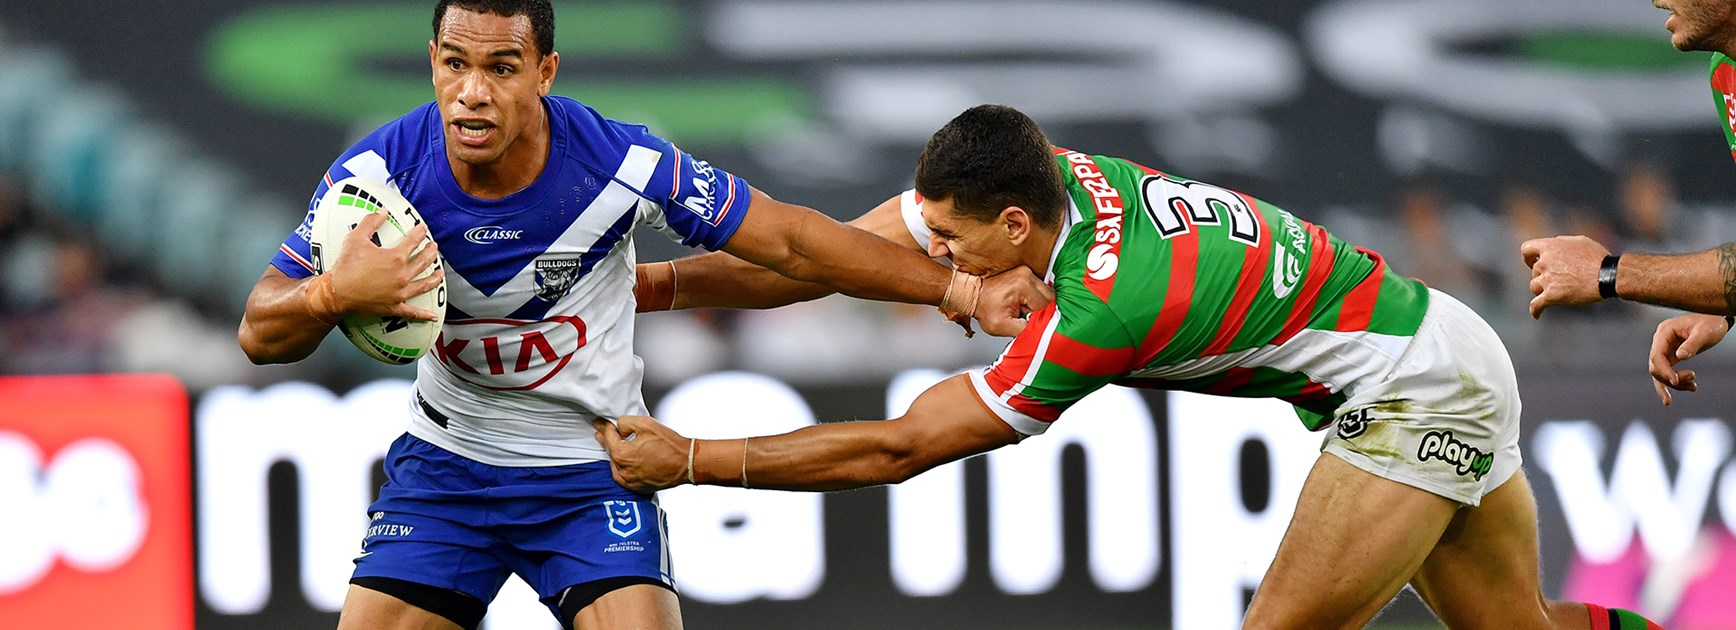 Stat Attack: Hopoate producing huge numbers despite centre switch